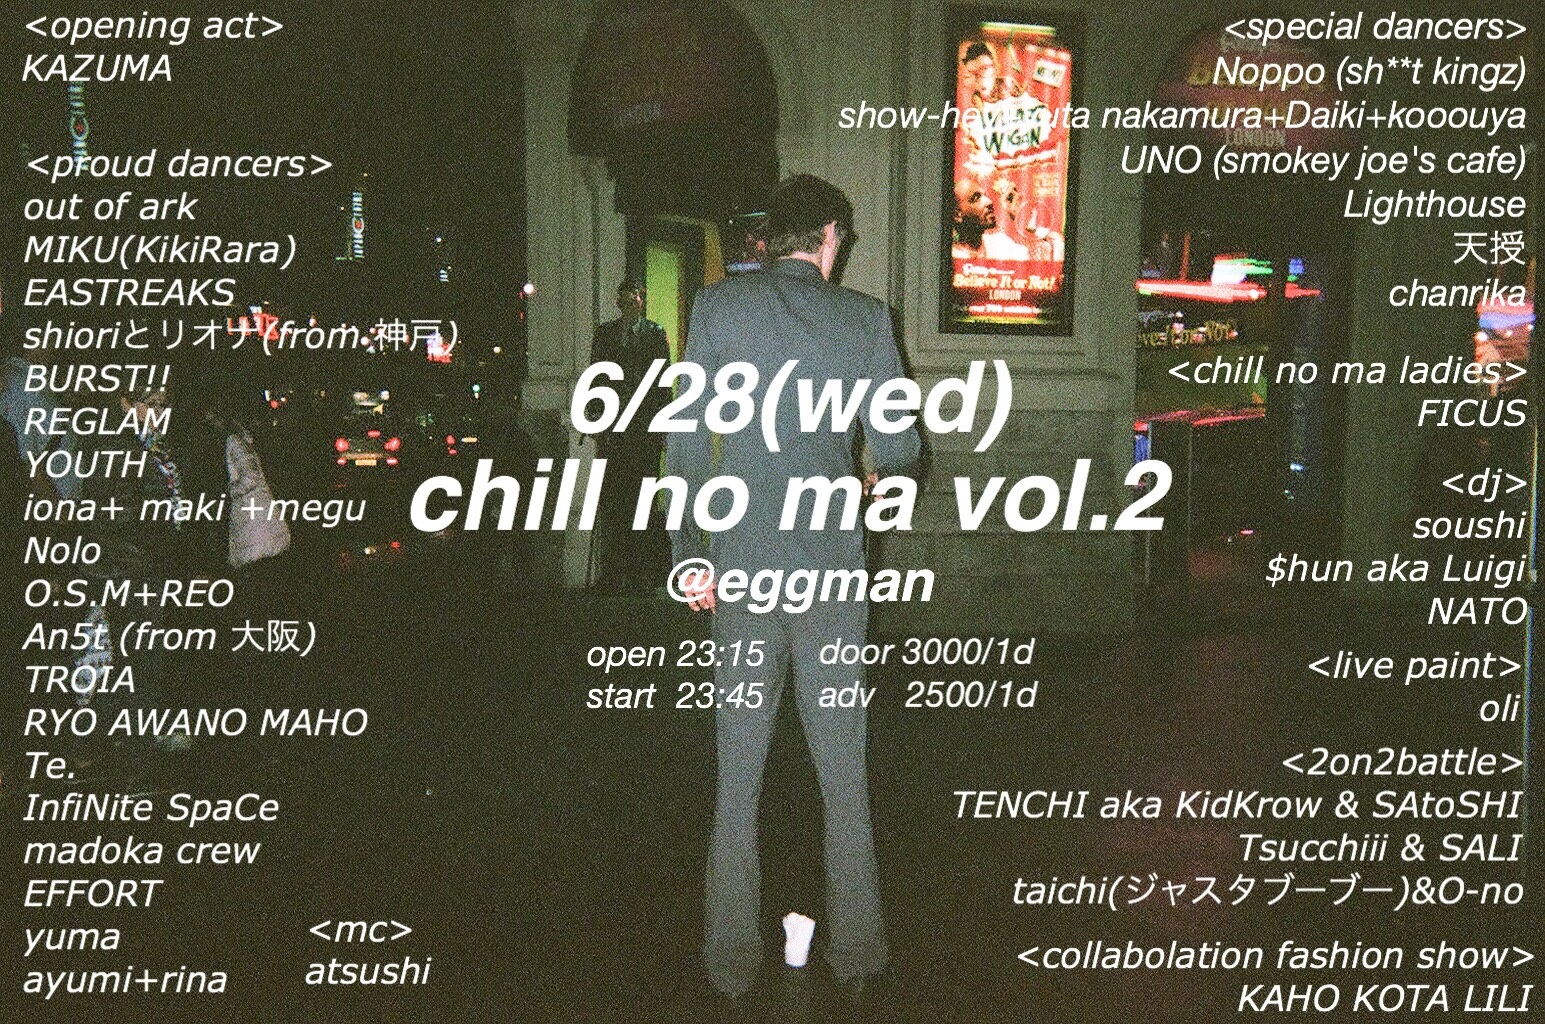 chill no ma vol.2